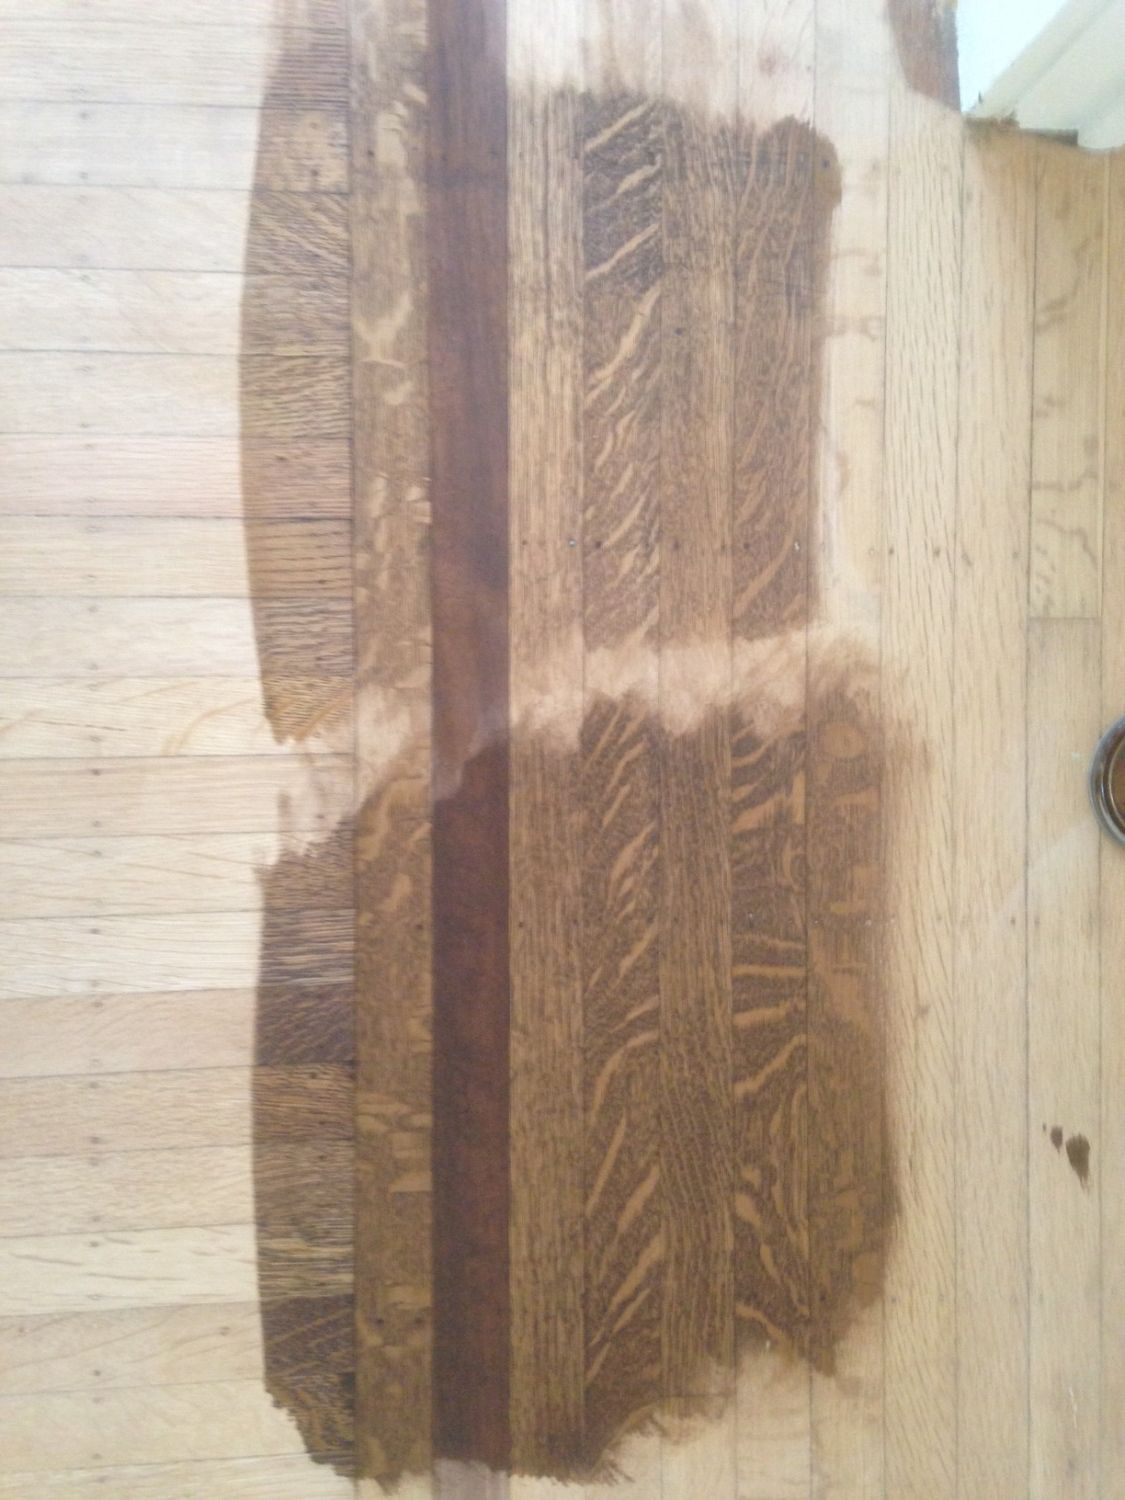 Showing How Quot Water Pop Quot Darkens The Effect Of Stain On The